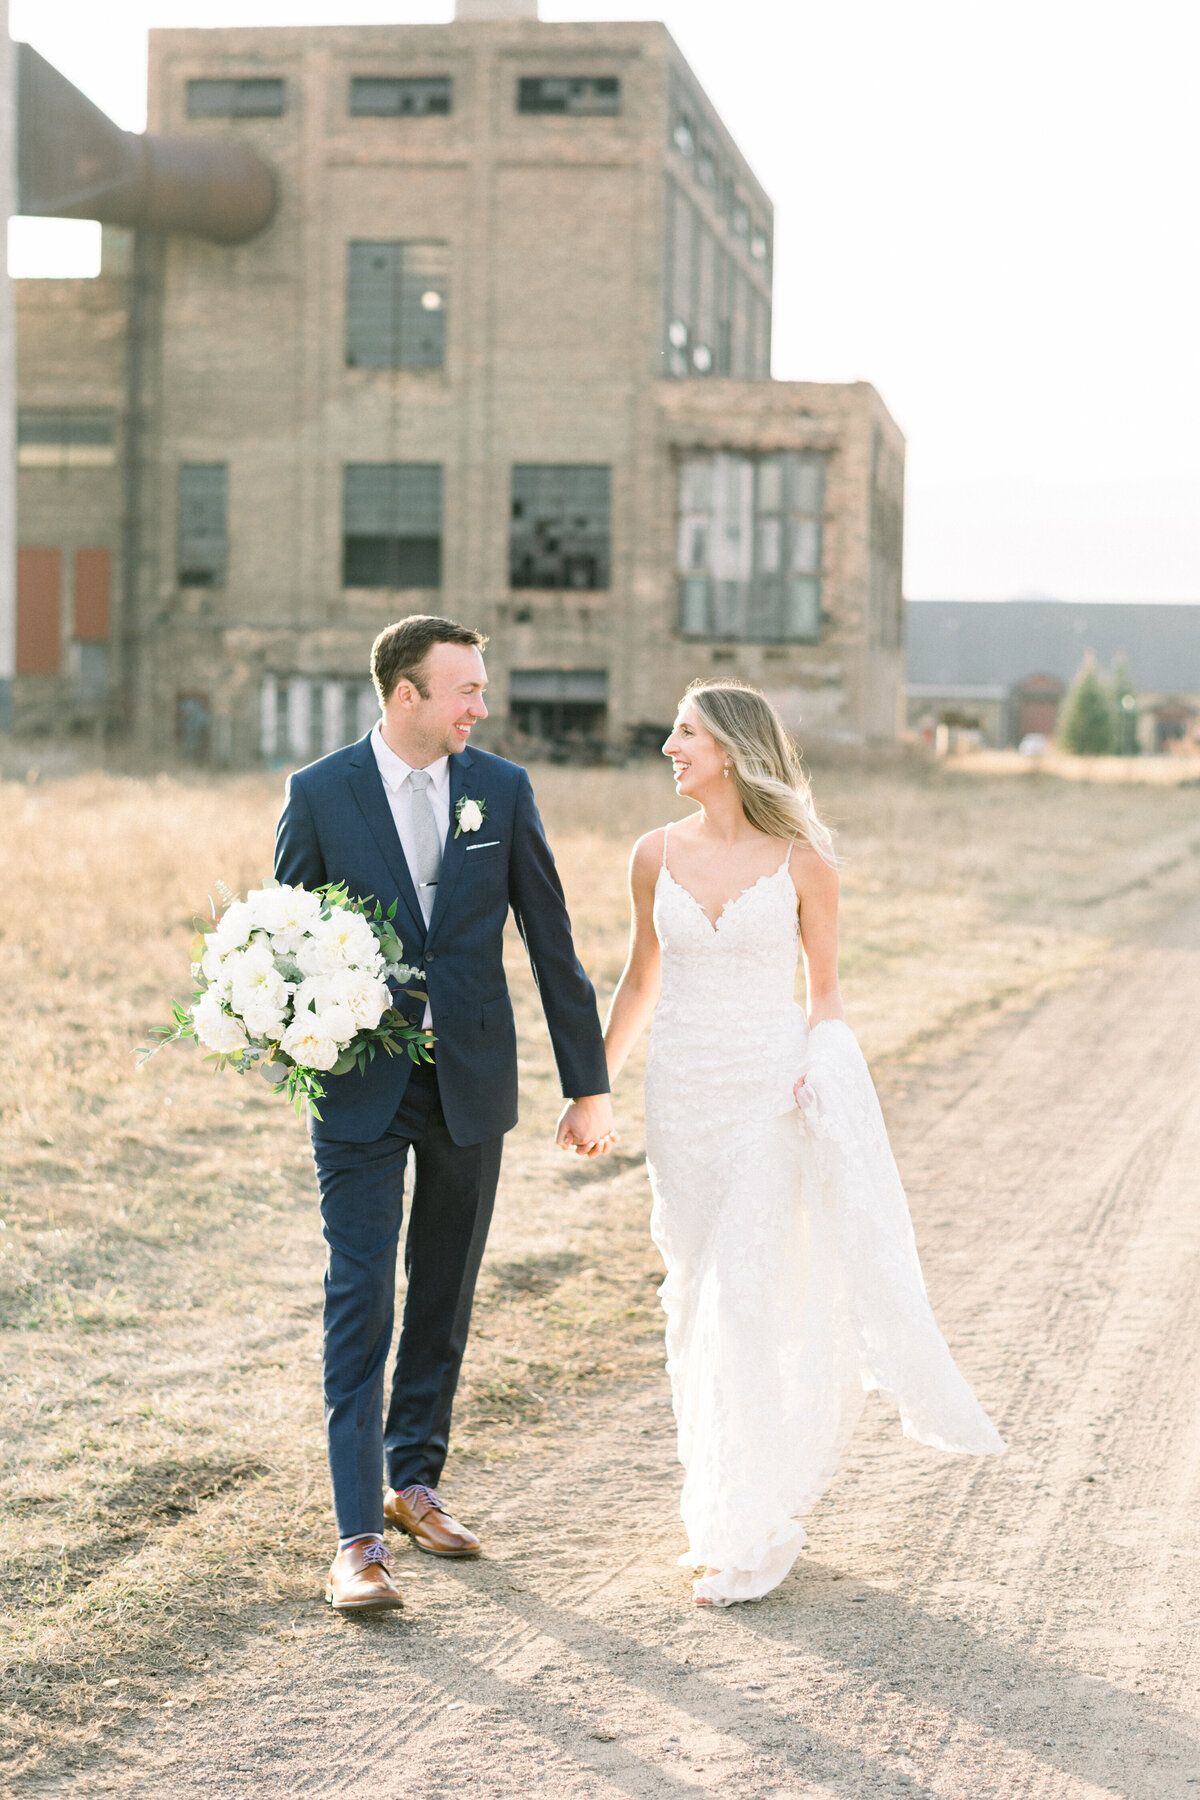 Blacksmith Main Photographer, Blacksmith Main Wedding photos, Brainerd wedding photographer, Minnesota wedding photographer, Minneapolis wedding photographer, MN fine art photographer